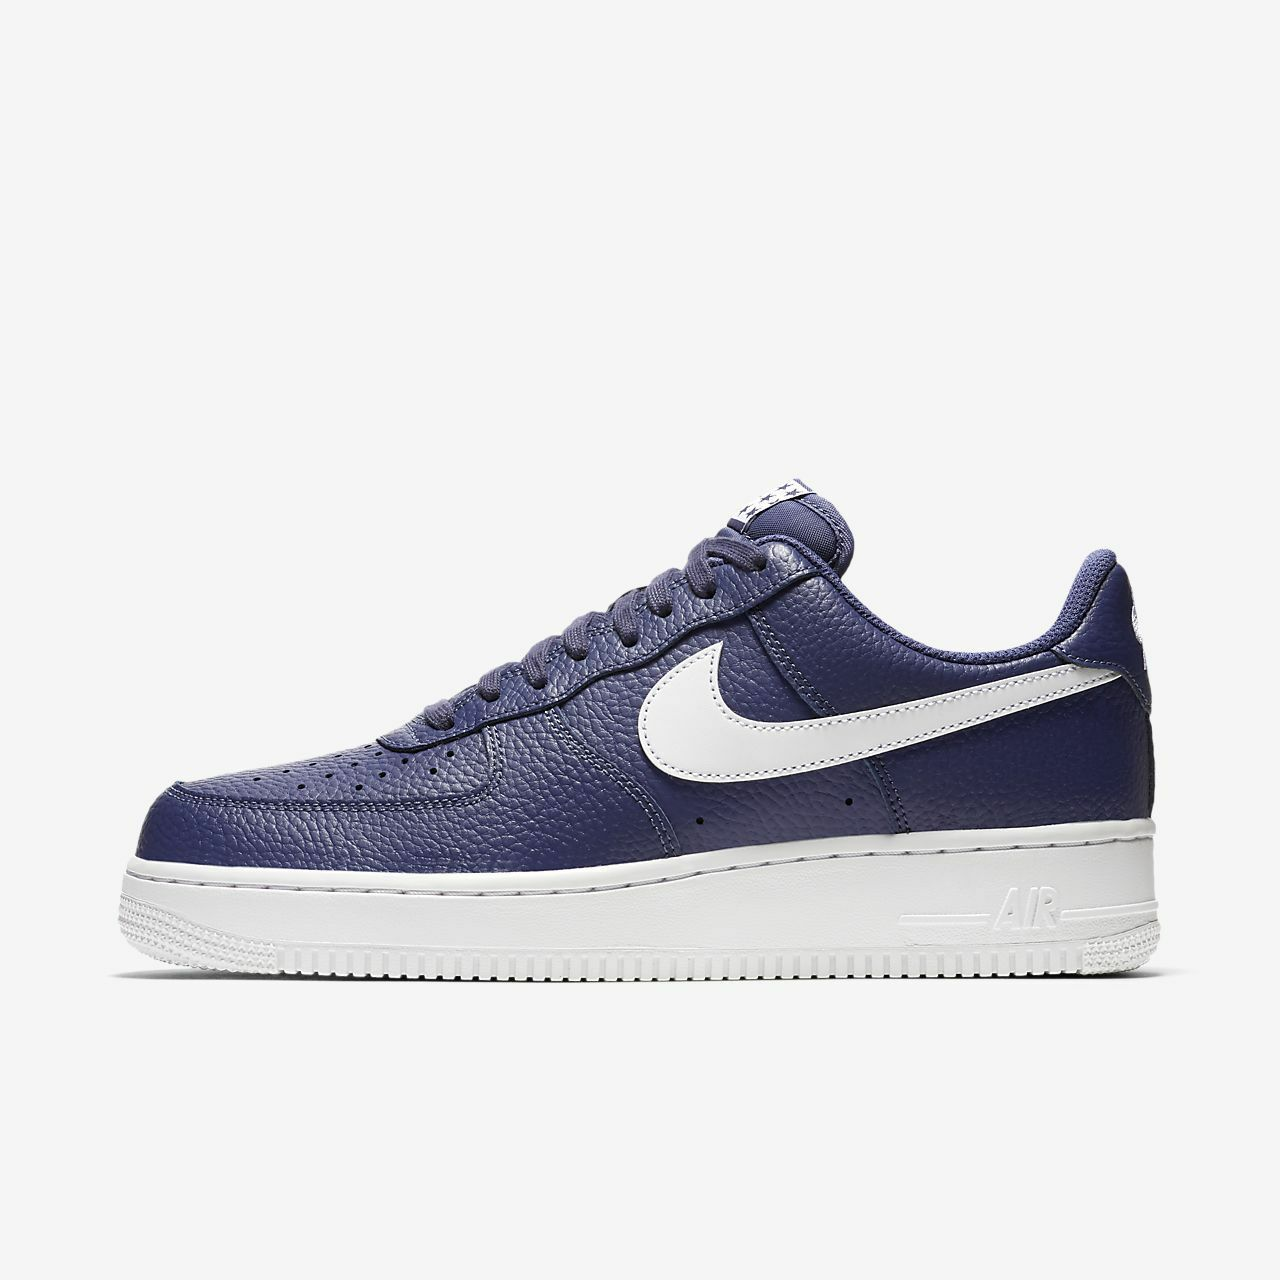 Nike Air Force 1 One '07 Low Top bluee Recall and White AA4083 401 AF1 Uptown